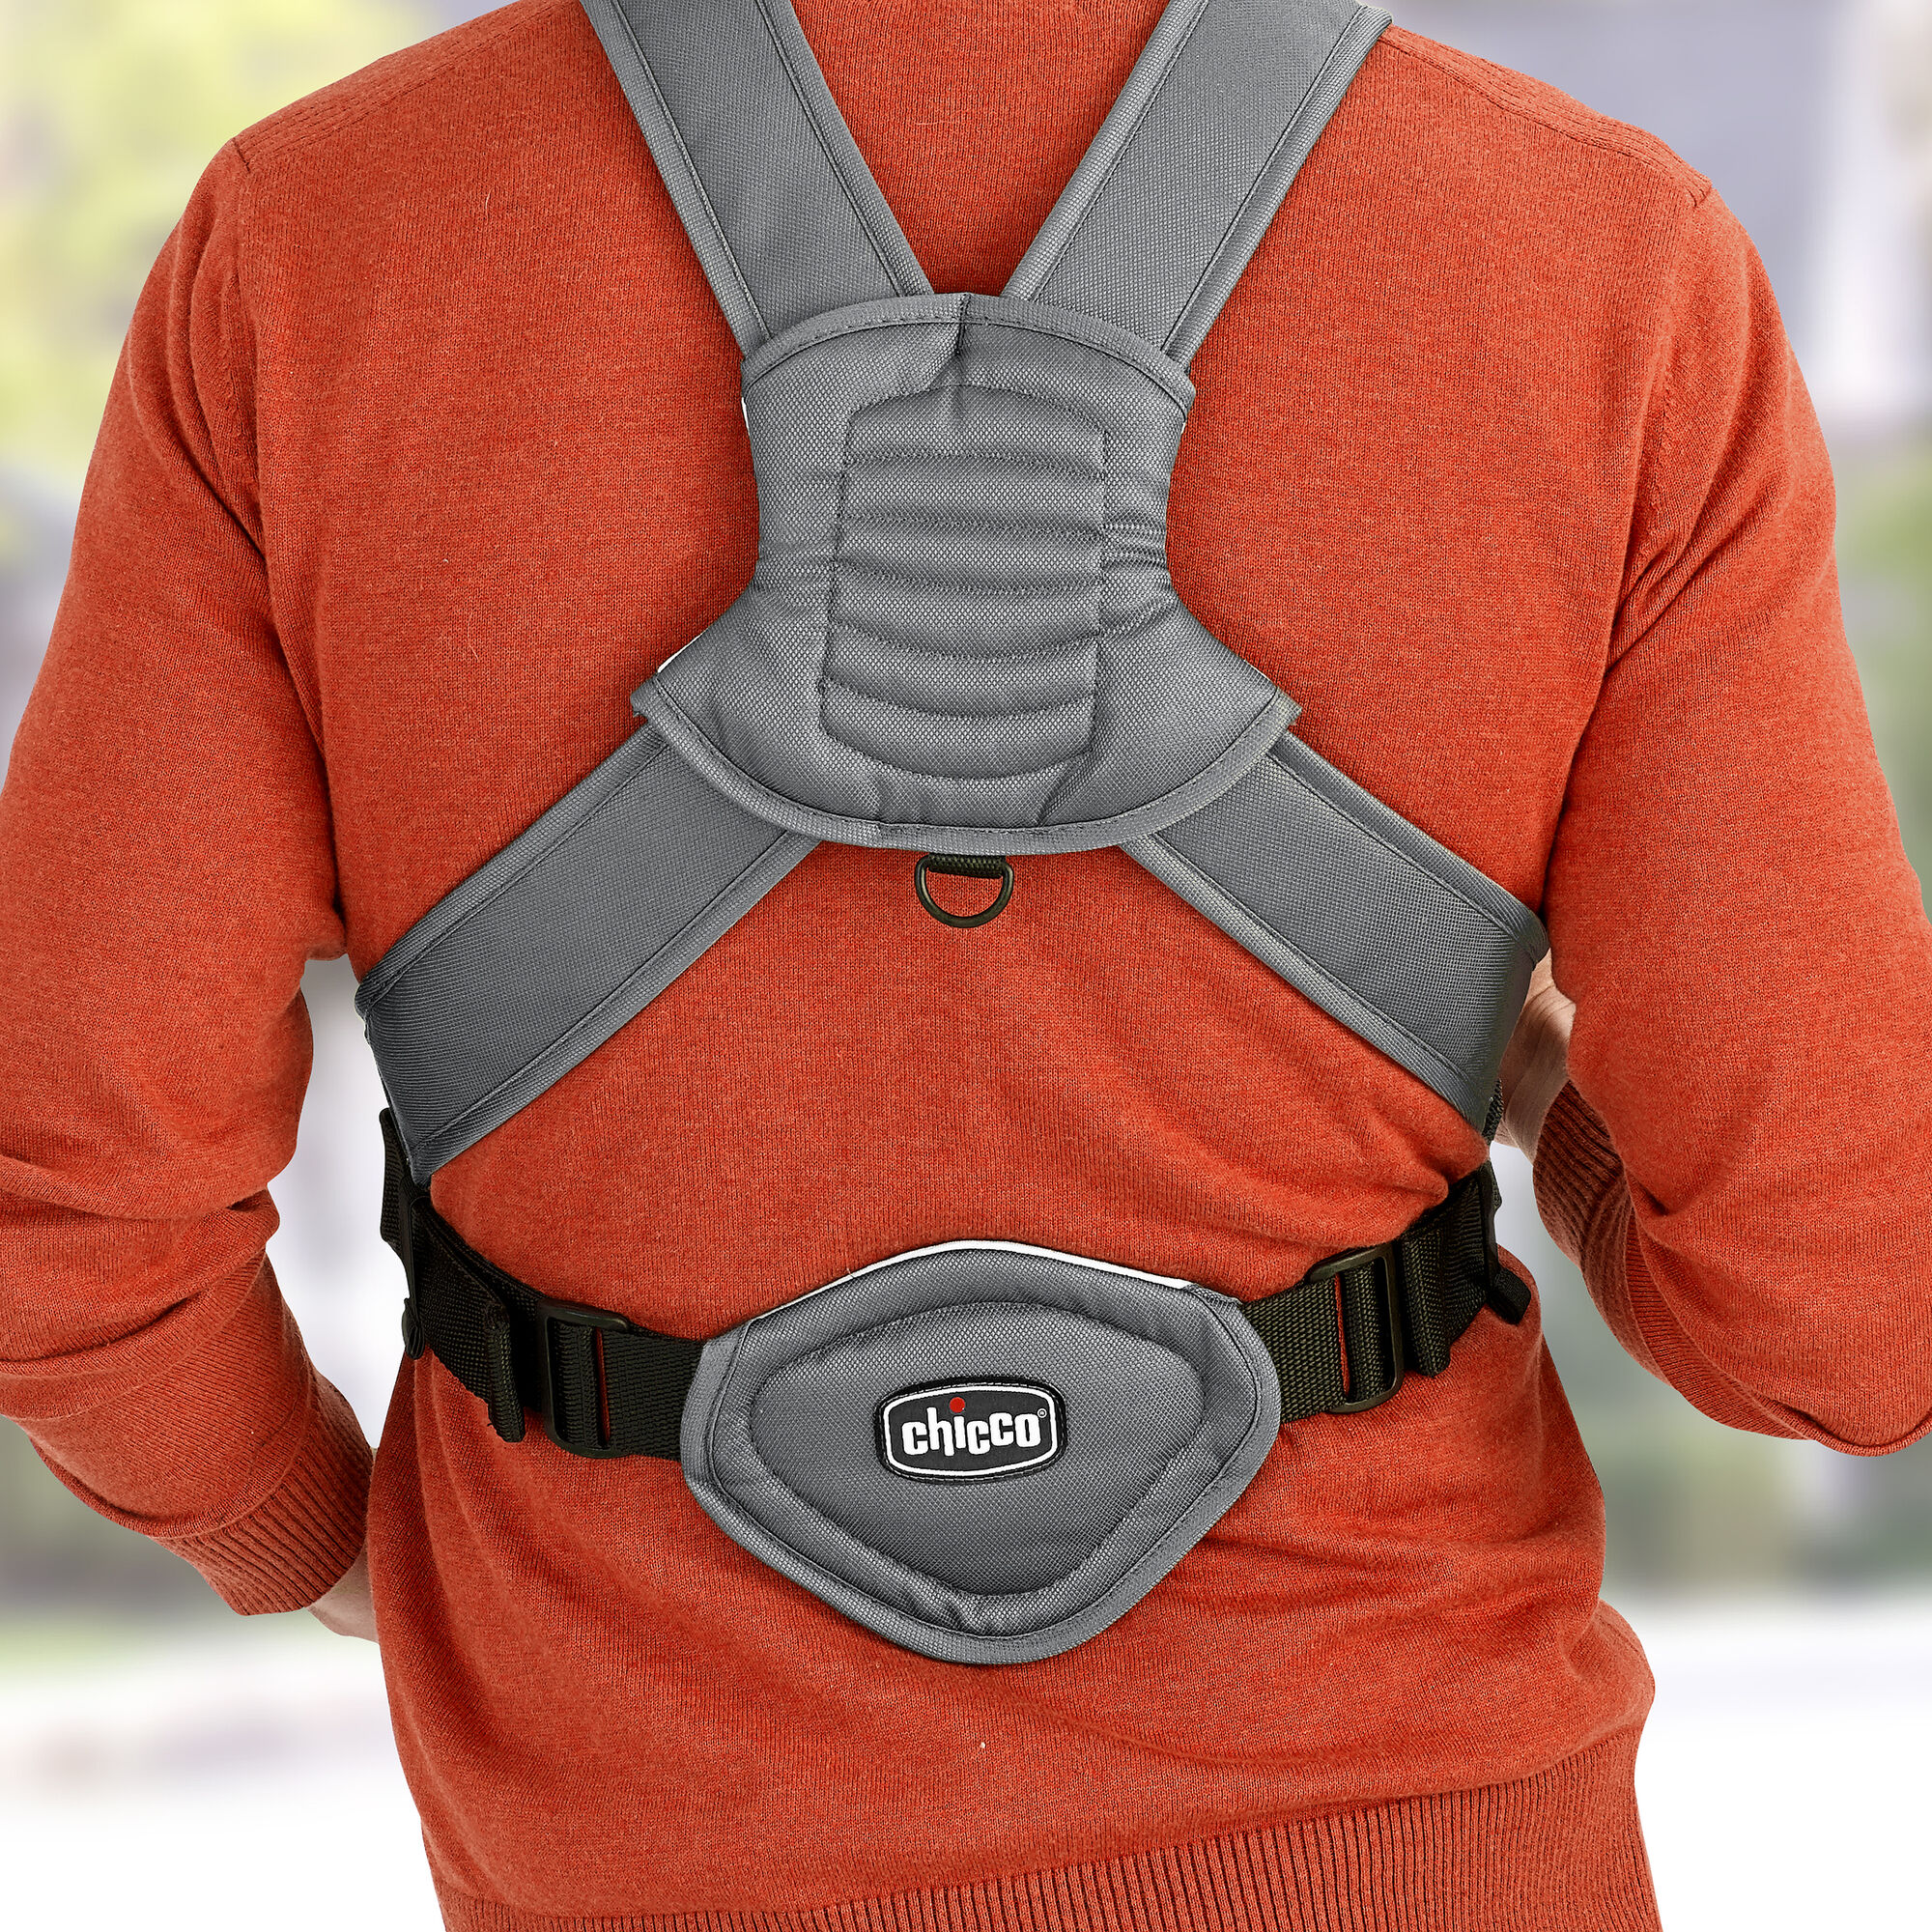 Padded Straps With Lumbar Support Provide A Comfortable Fit For Mom Or Dad